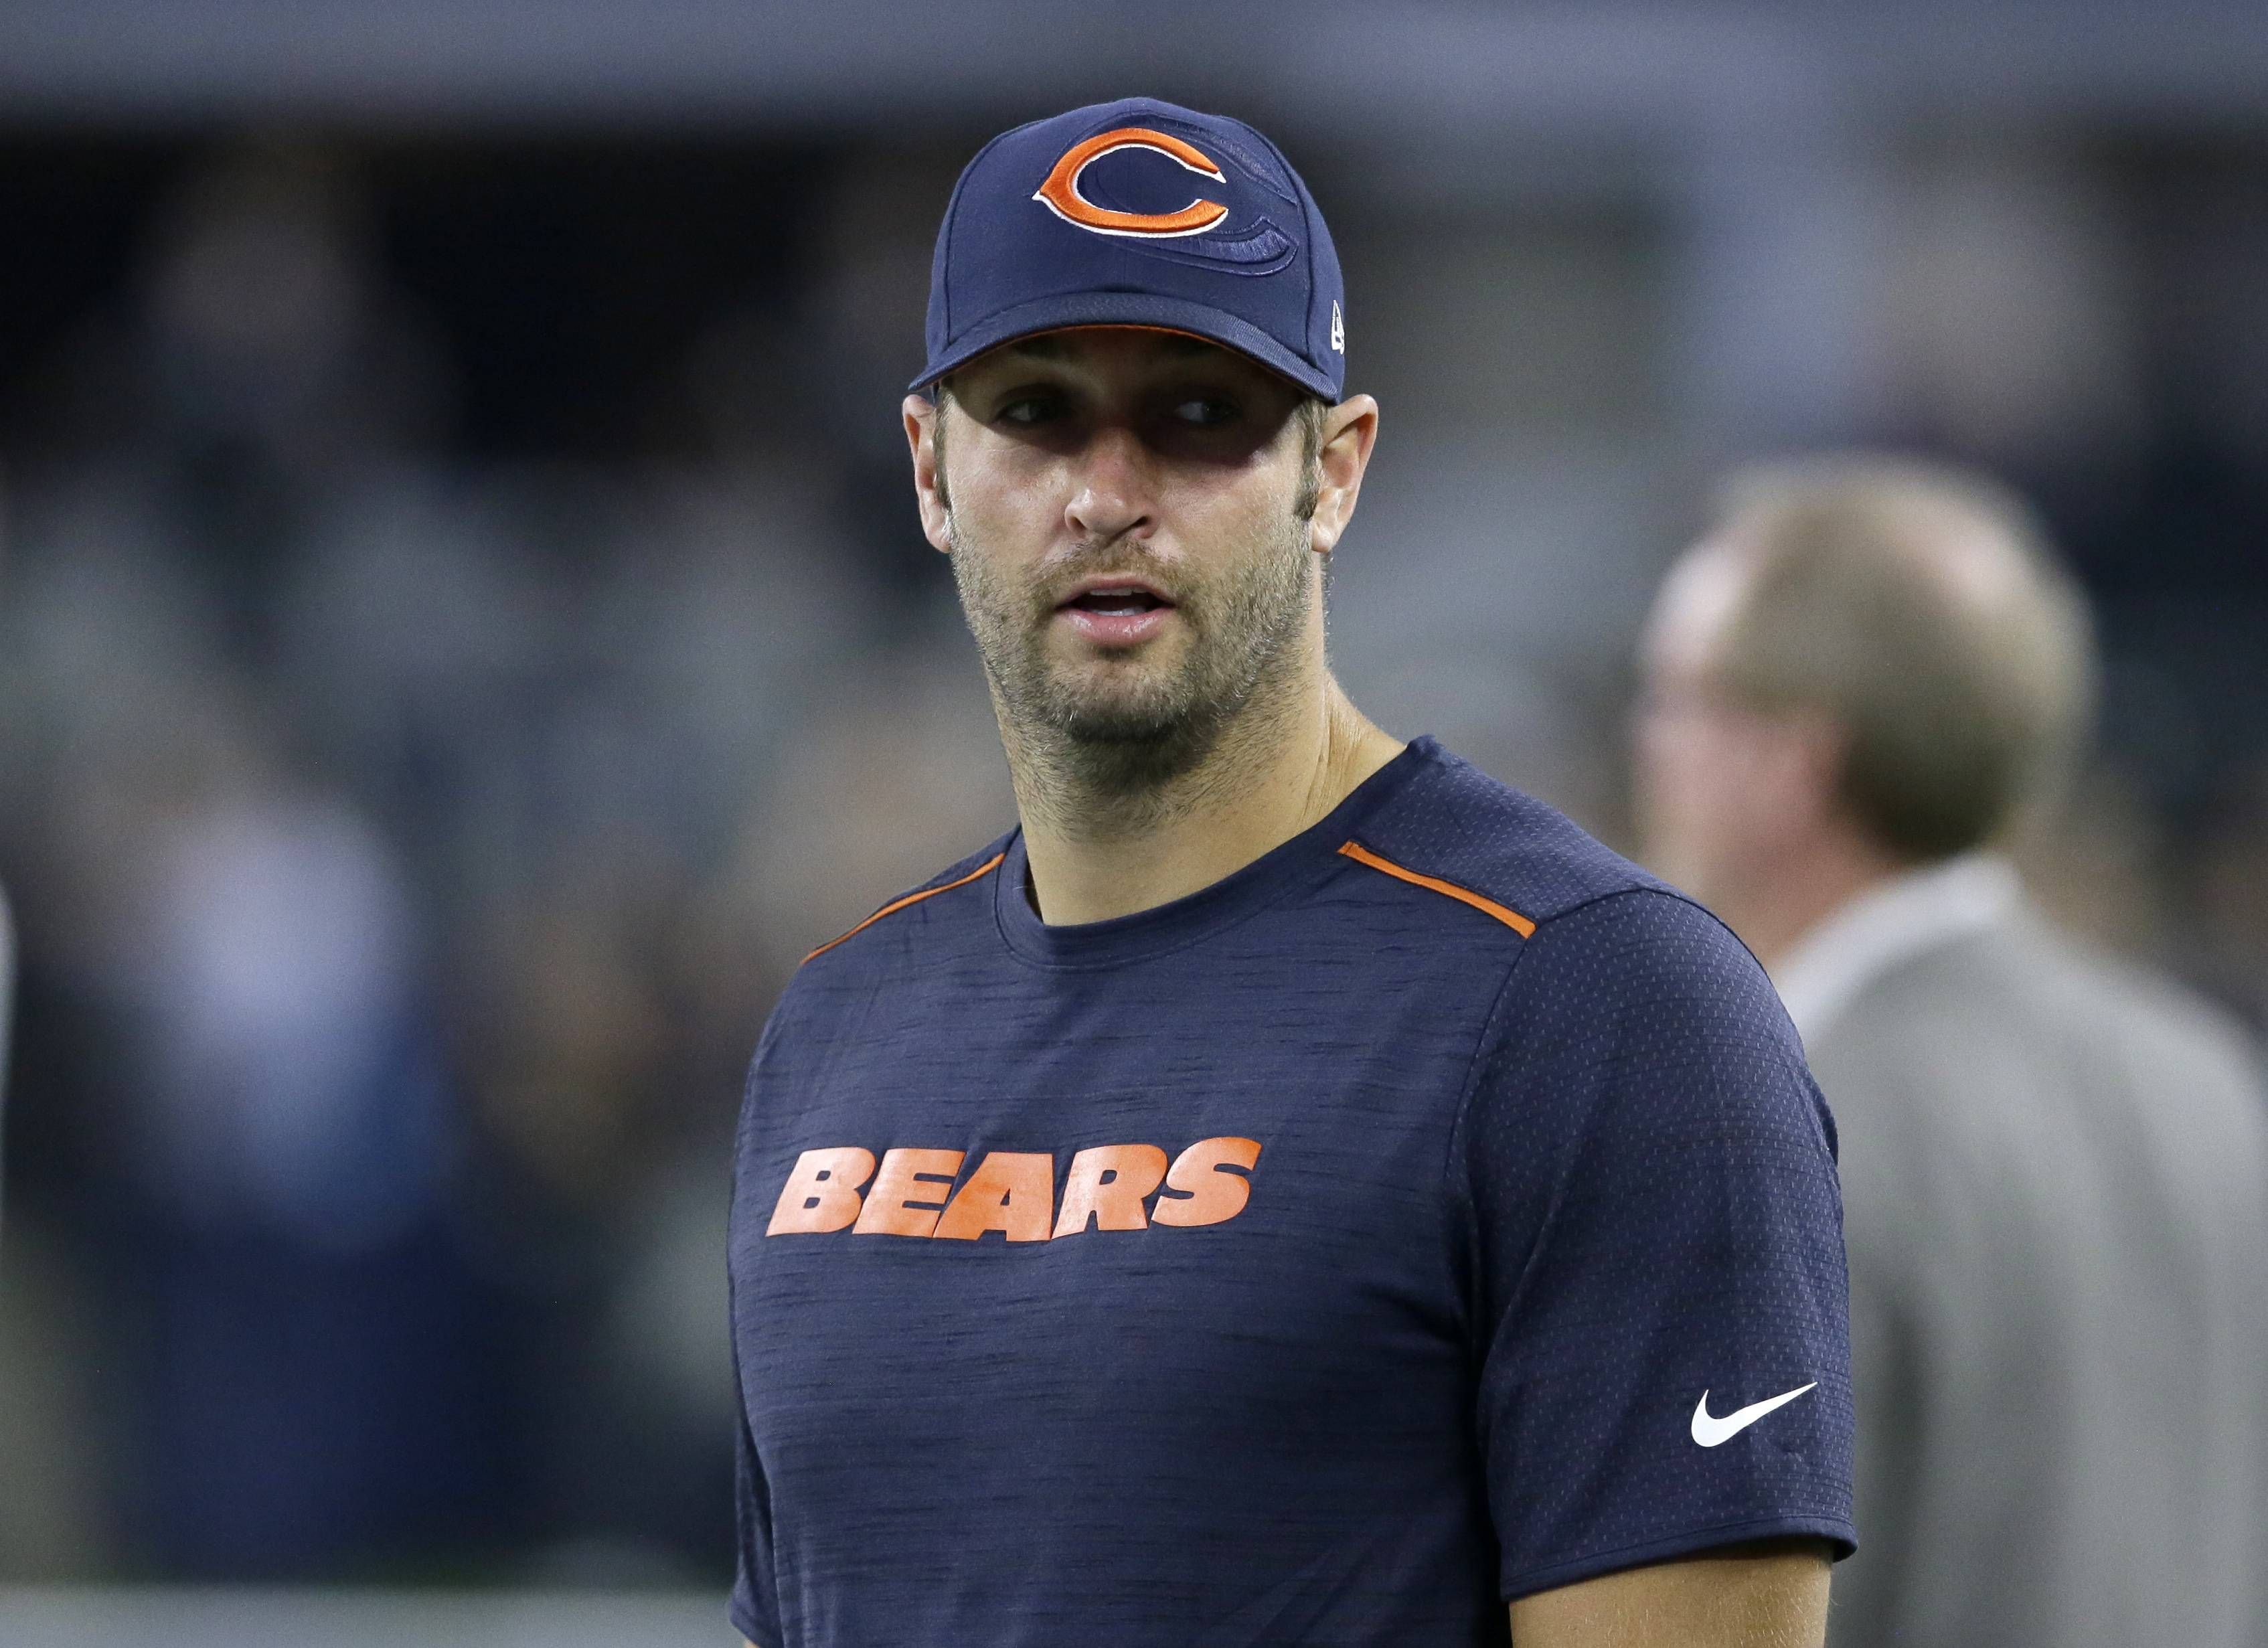 Chicago Bears coach John Fox said the starting quarterback slot isn't a given for Jay Cutler when he returns from injury. Cutler has been sidelined with a sprained thumb, and Brian Hoyer started Sunday night's loss in his place.